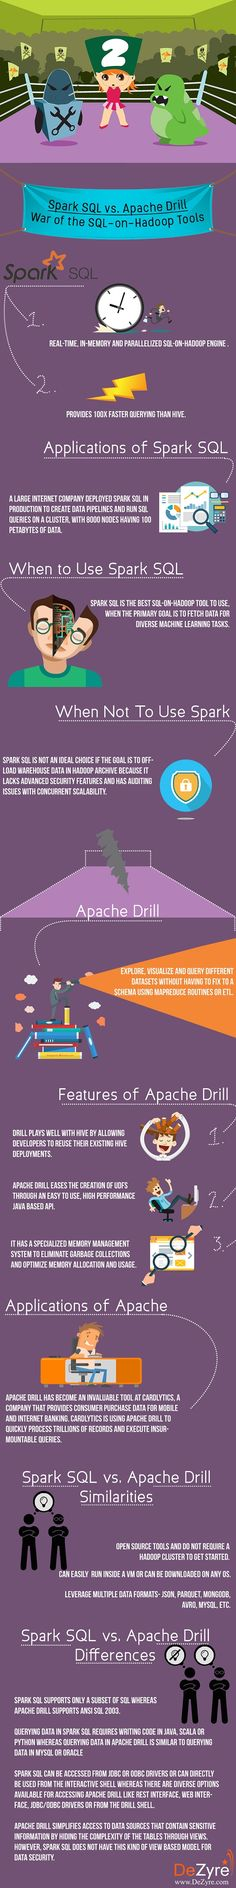 Apache Drill- Decide which SQL-on-Hadoop tool to use for your next big data project for interactive queries and faster data analytics on Hadoop